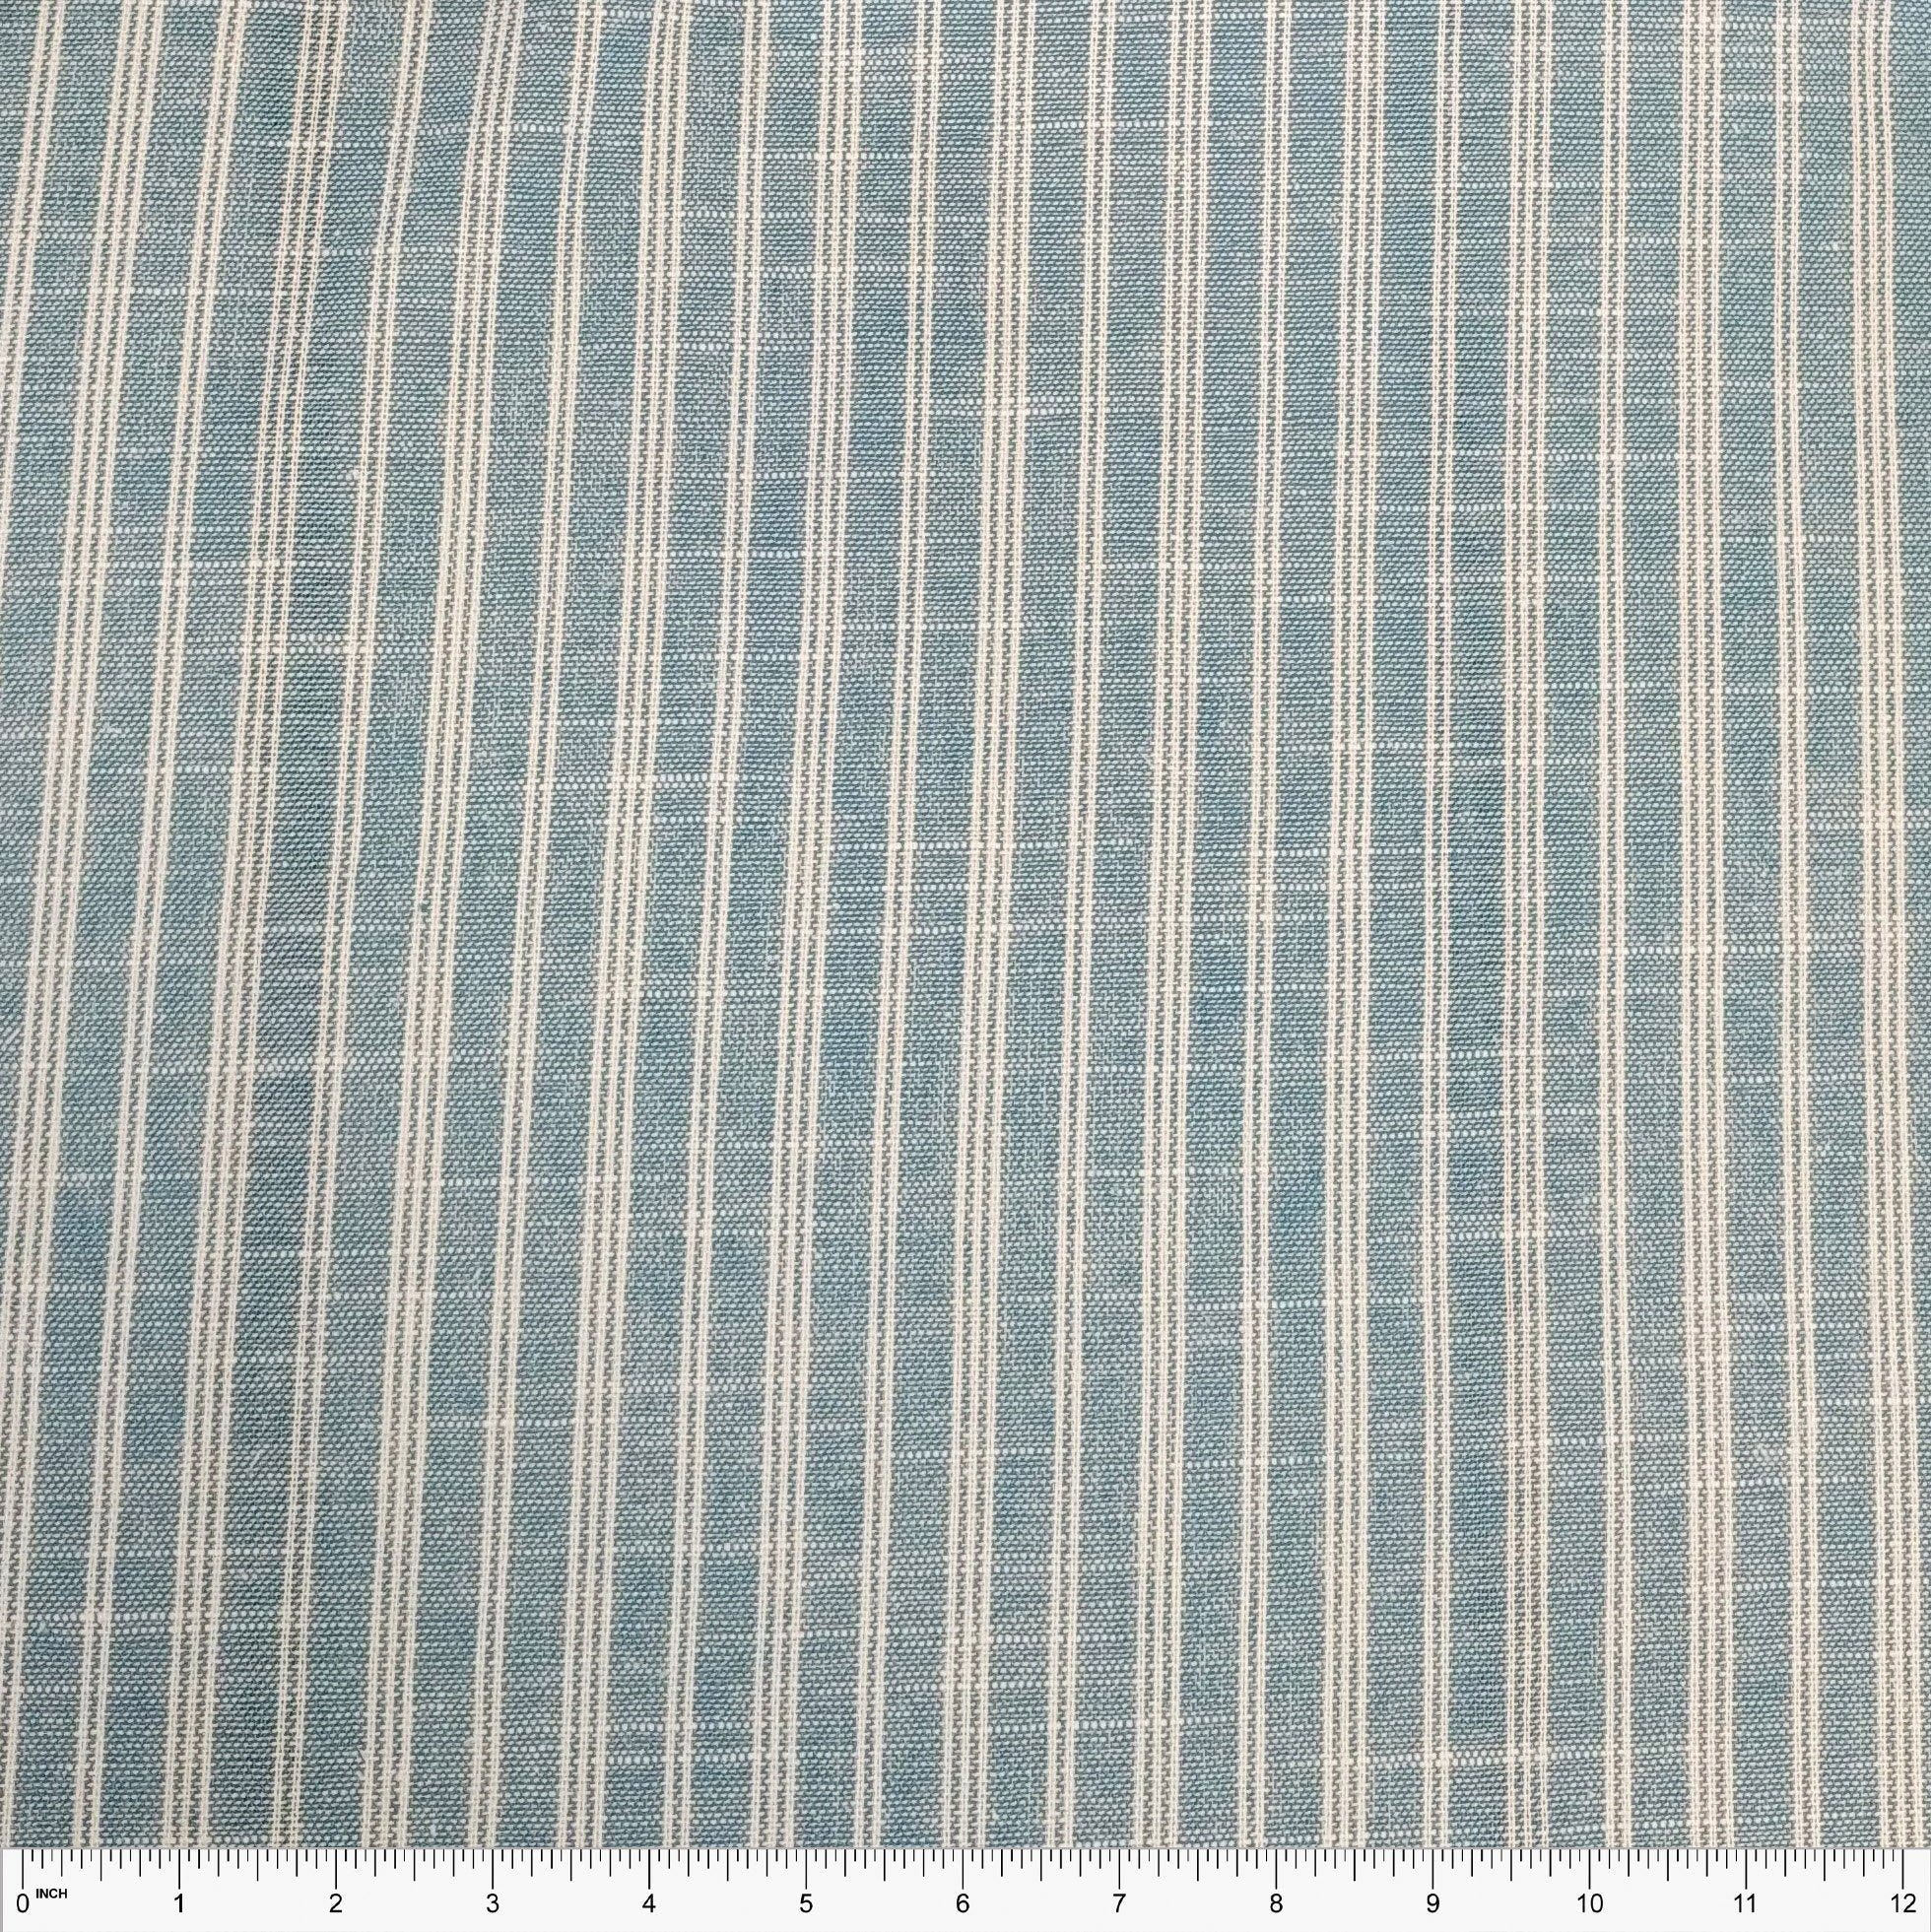 Light Chambray Blue and Off White Yarn Dyed Vertical Stripe Light to Medium Weight Rayon Linen - Raspberry Creek Fabrics Knit Fabric